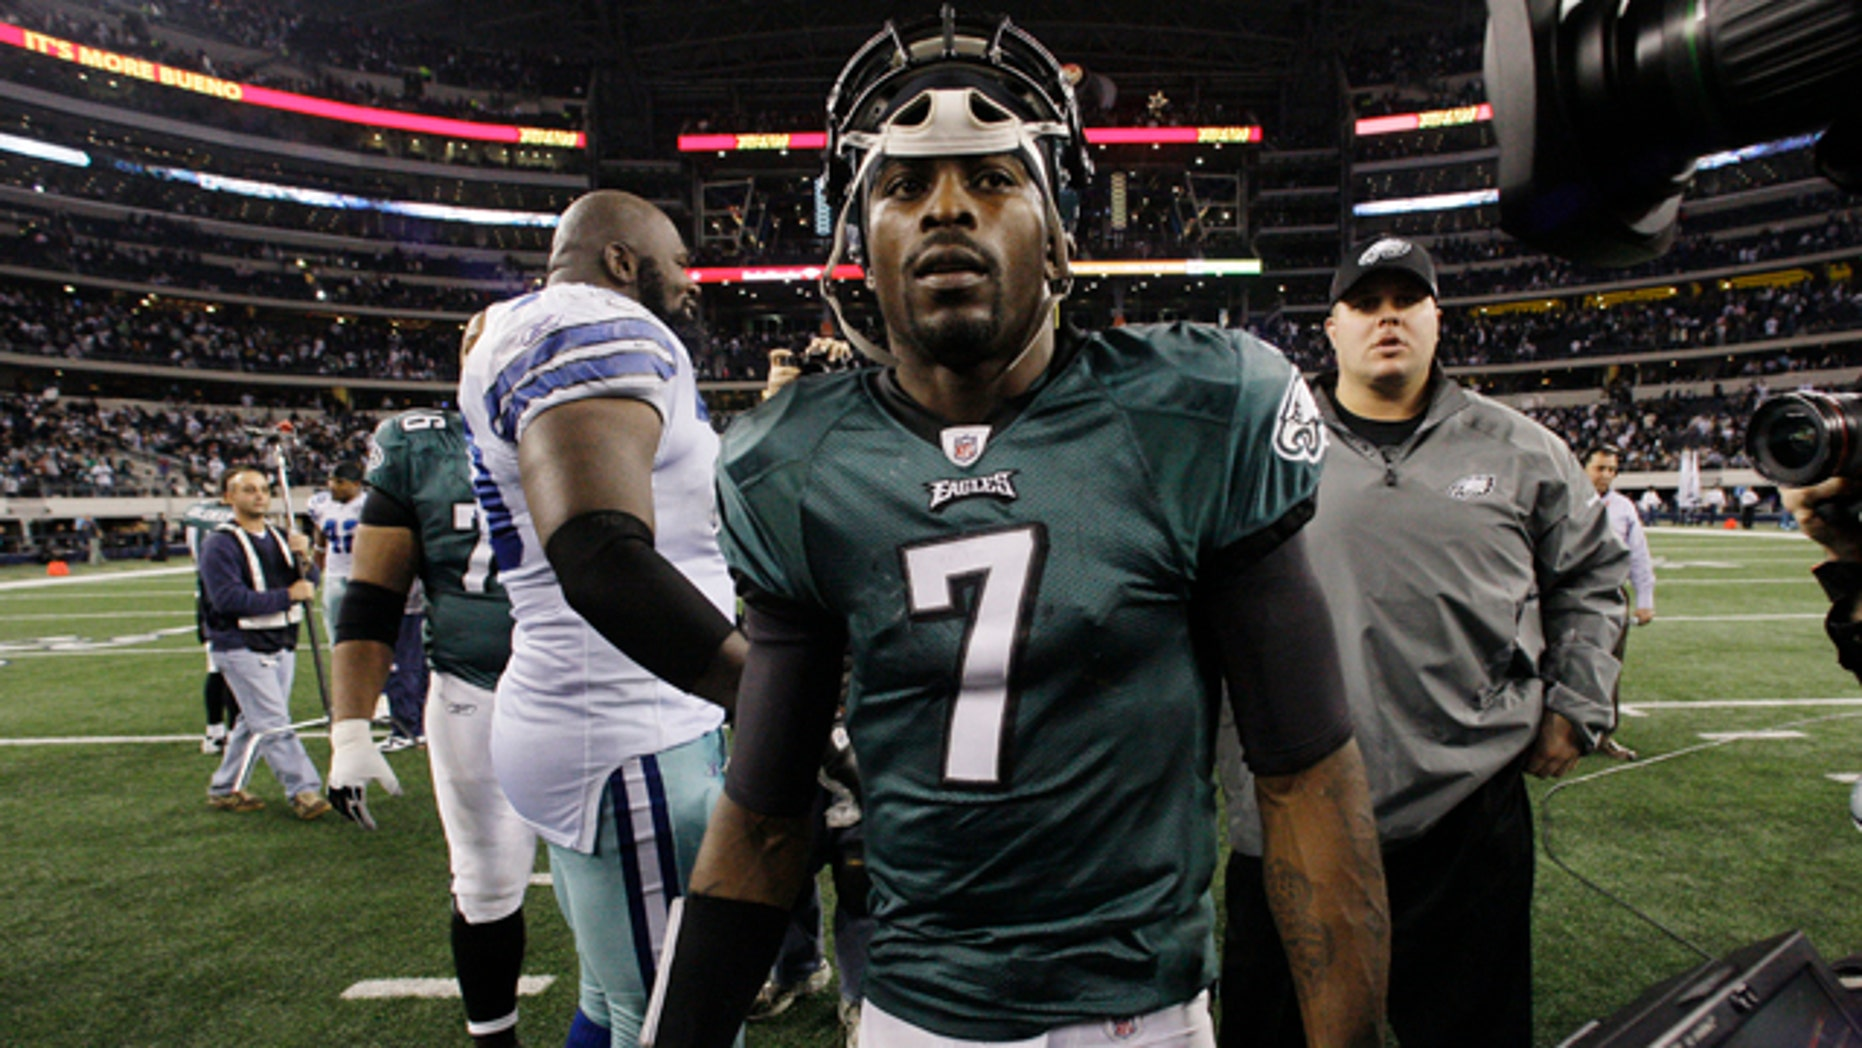 Dec. 15: Philadelphia Eagles quarterback Michael Vick leaves the field after his team beat the Dallas Cowboys 30-27 in an NFL football game in Arlington, Texas.